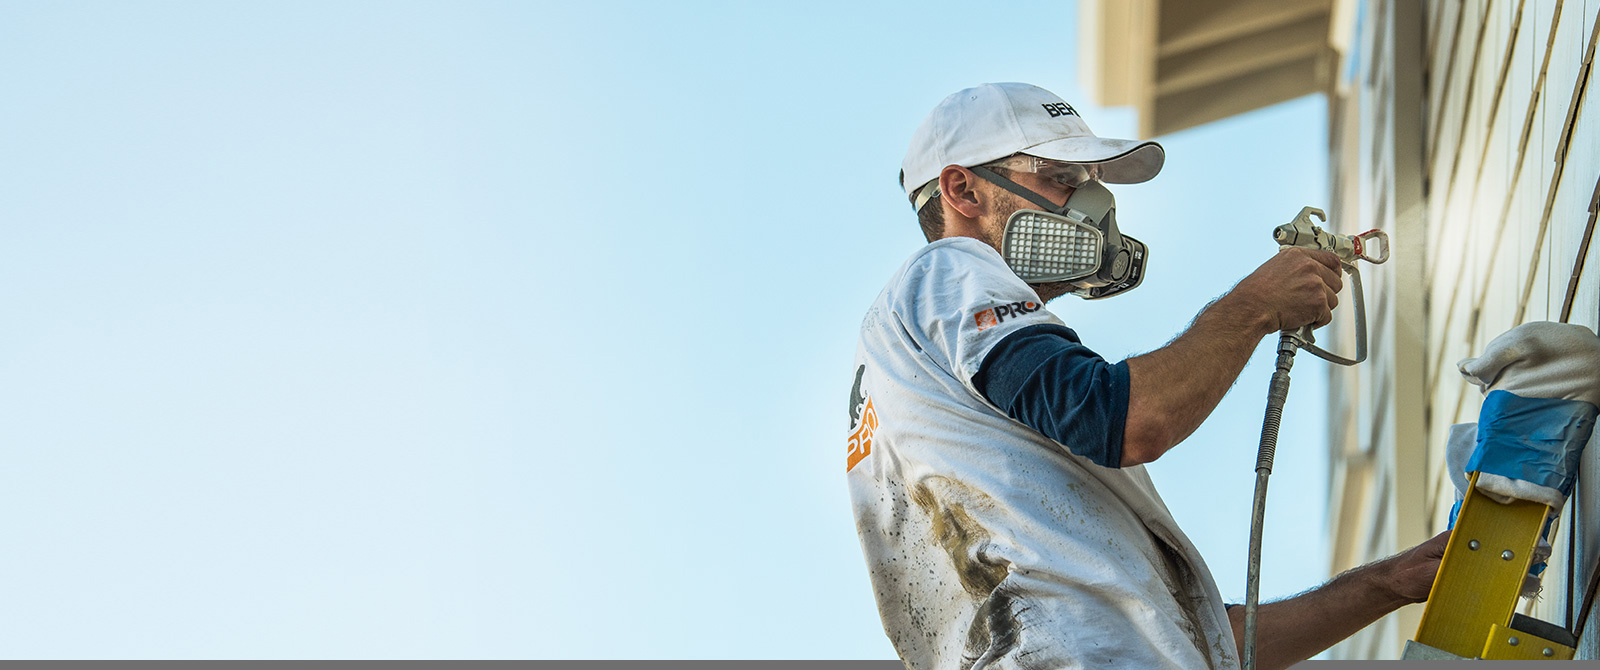 Large image of a Pro Contractor wearing a cap and shirt with Behr logo spray painting the exterior of house on a ladder.